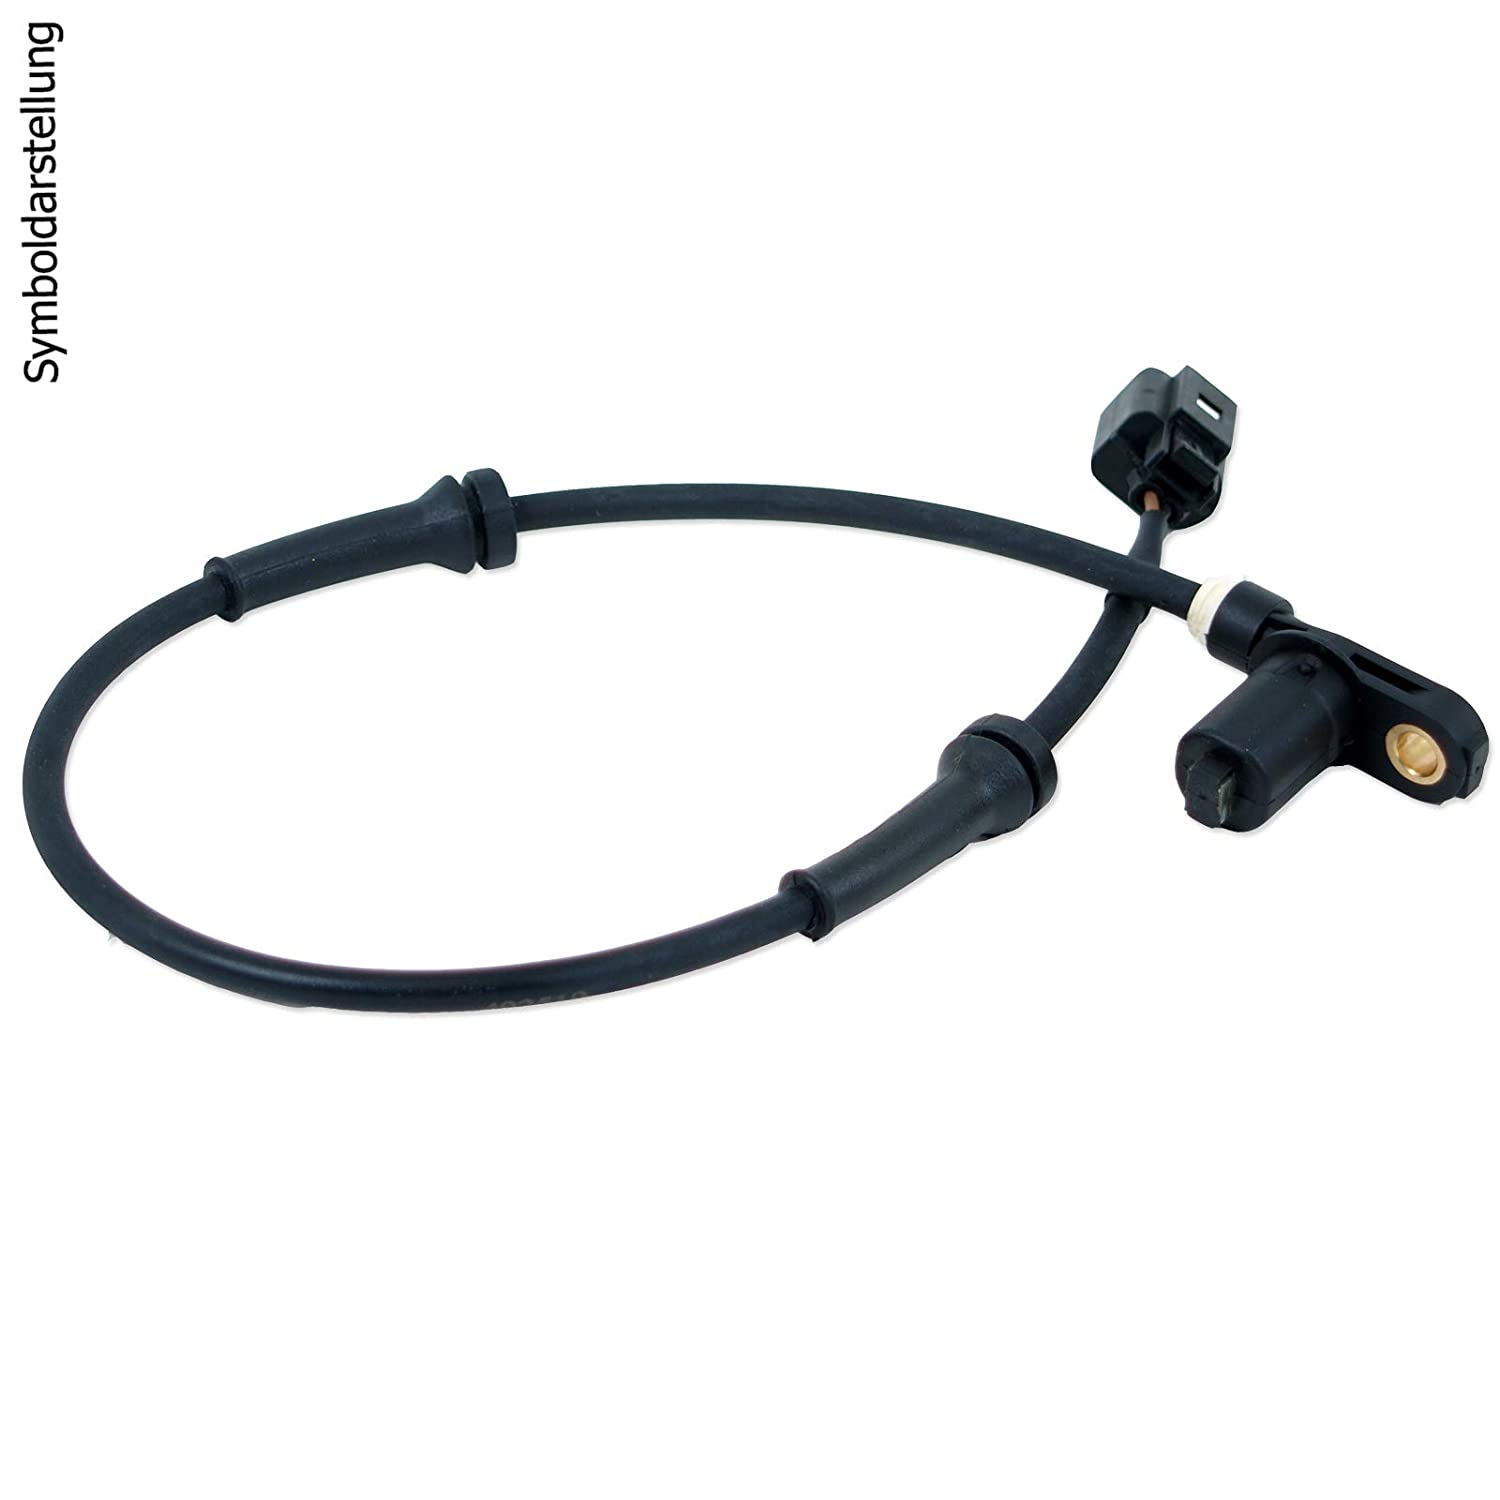 ABS Wheel Speed Sensor Rear Fits FORD Kuga VOLVO S40 V50 Wagon 2.0-2.5L 2004